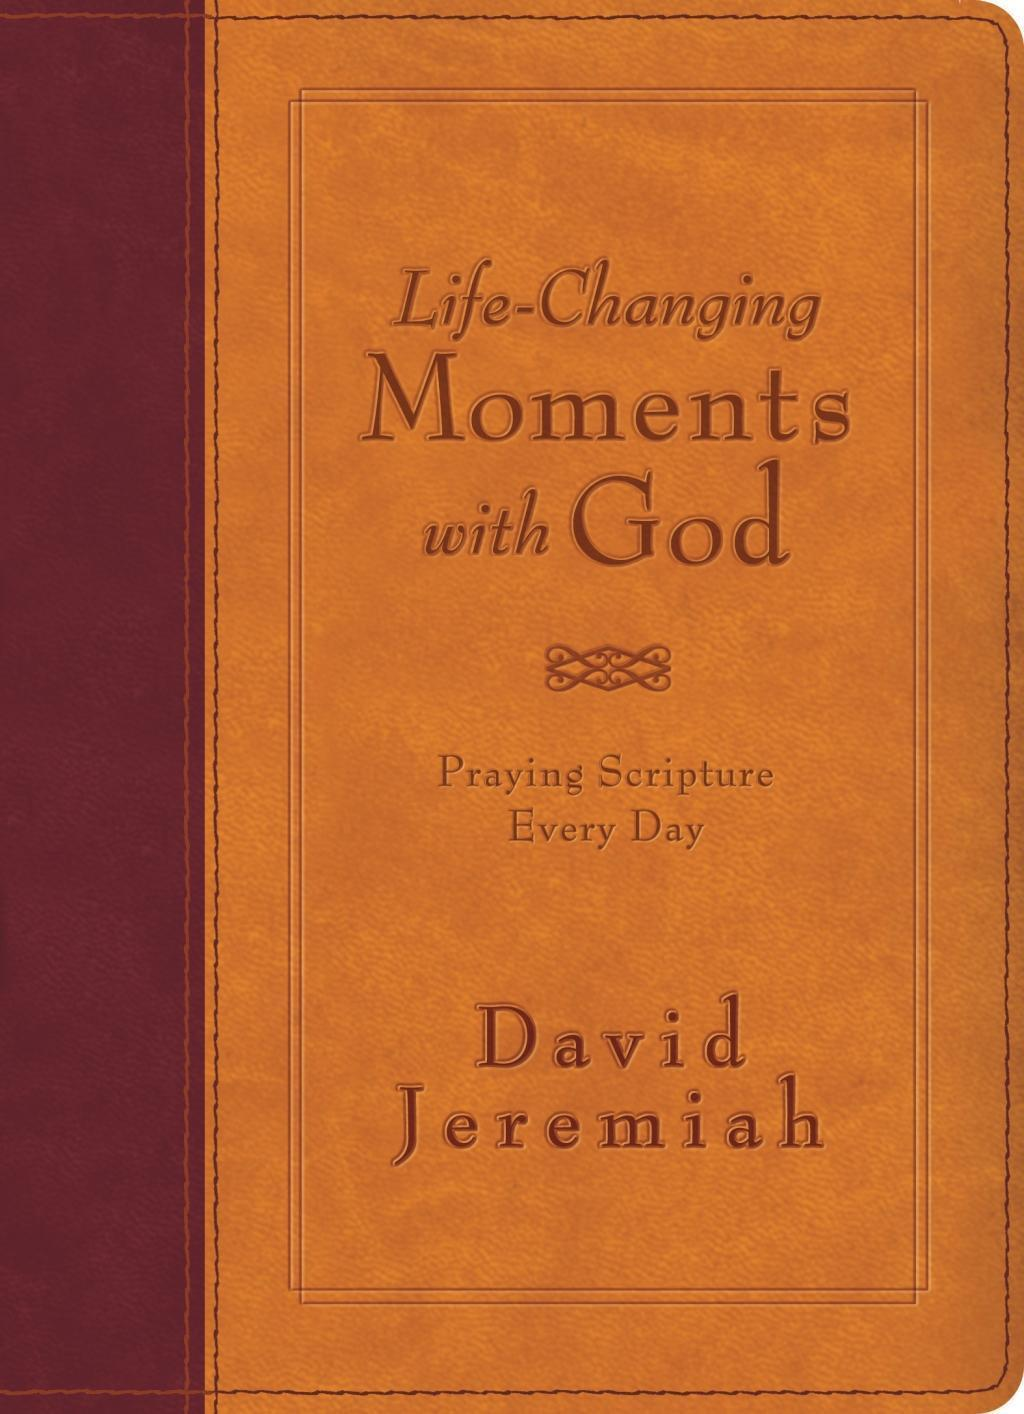 Life-Changing Moments with God